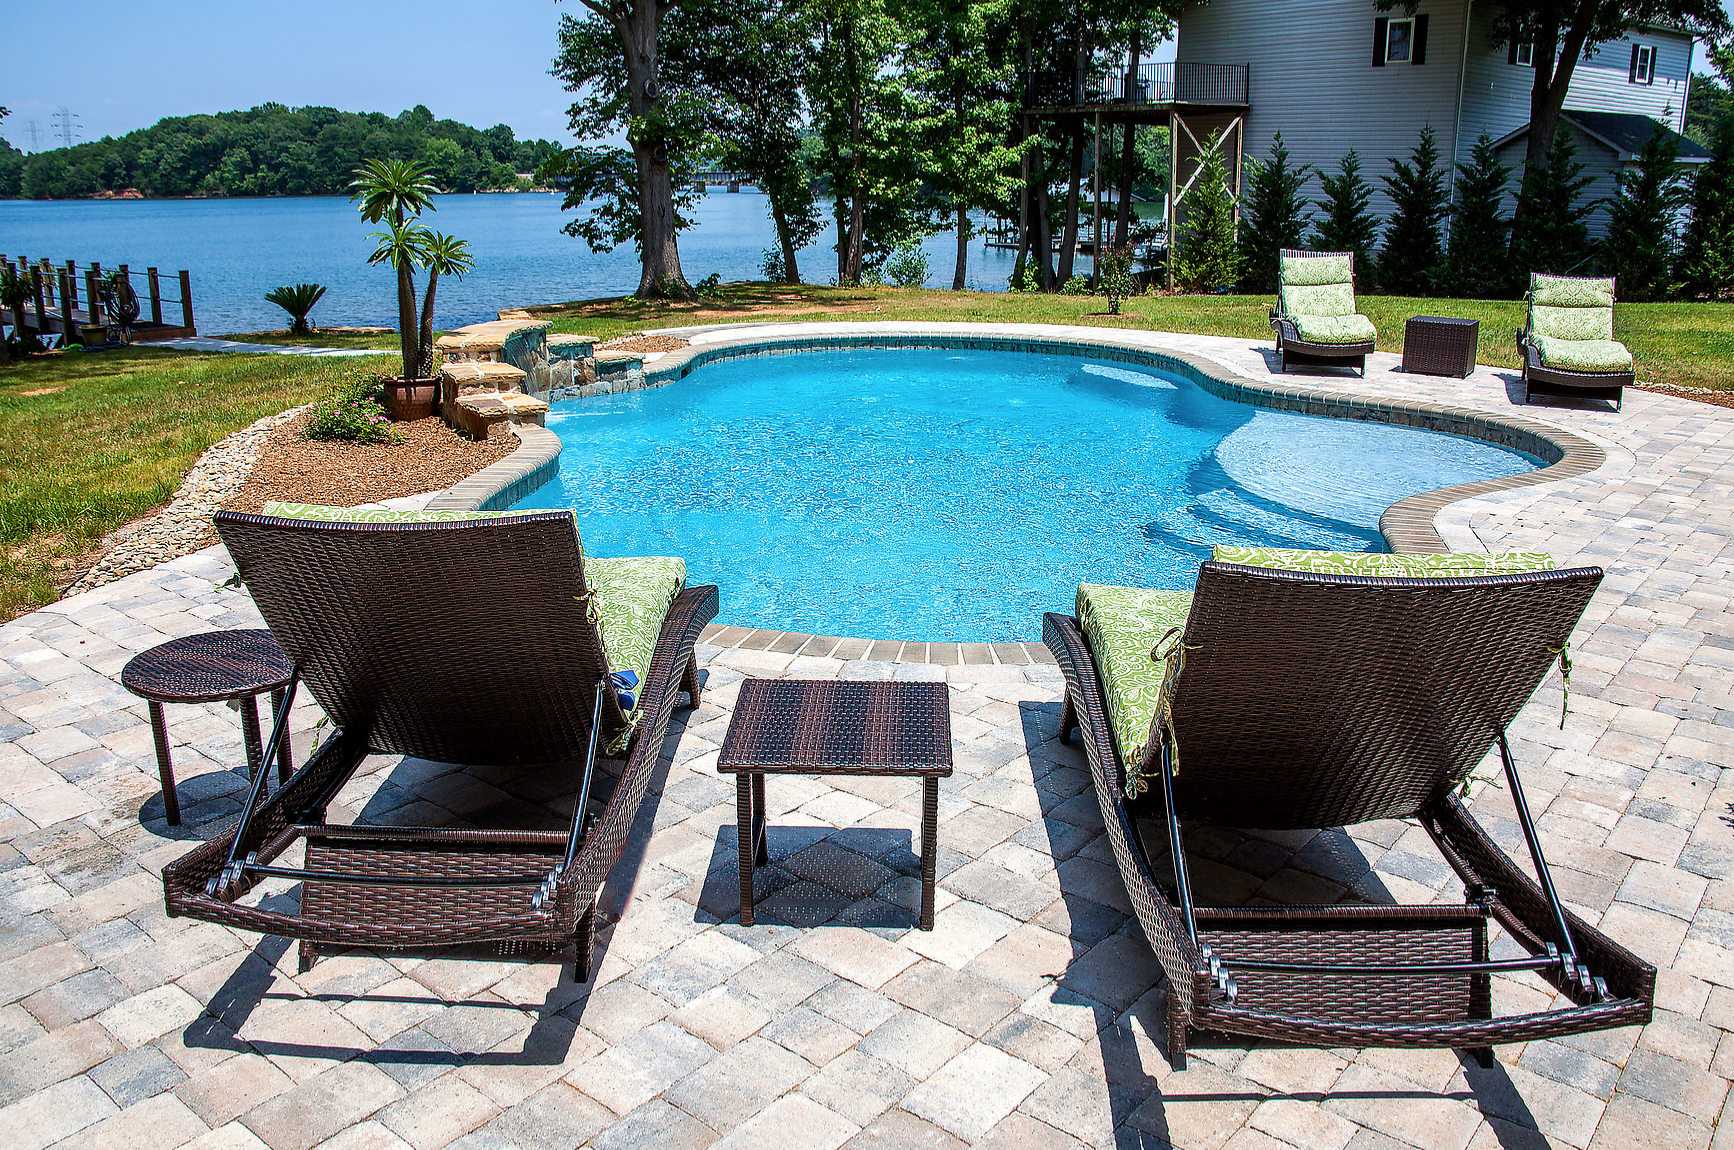 Lincolnton North Carolina Inground Concrete Pool Installation from CPC Pools Call us at 704-799-5236